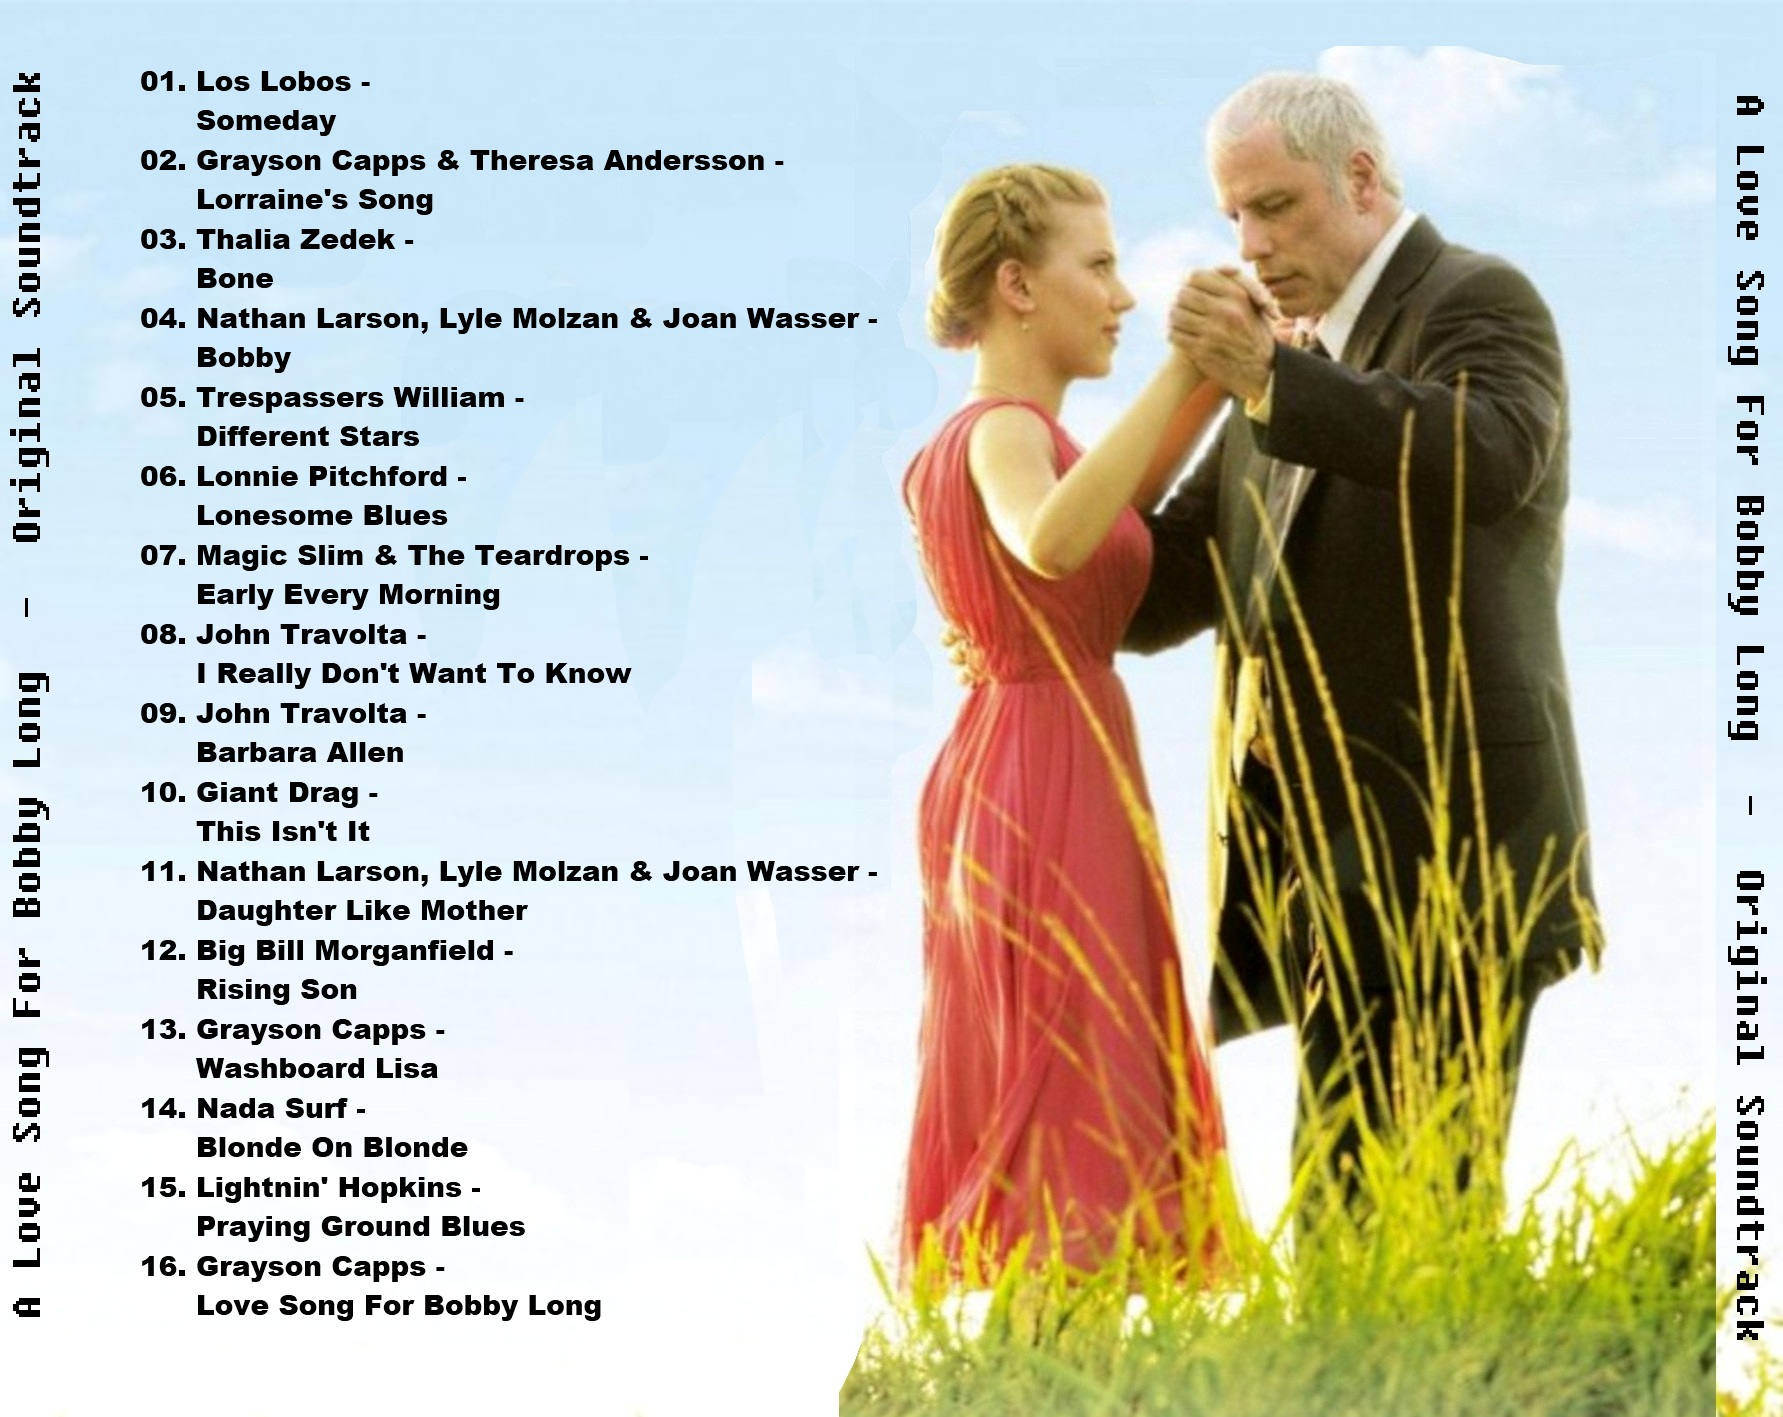 A Love Song For Bobby Long - Soundtrack - Back